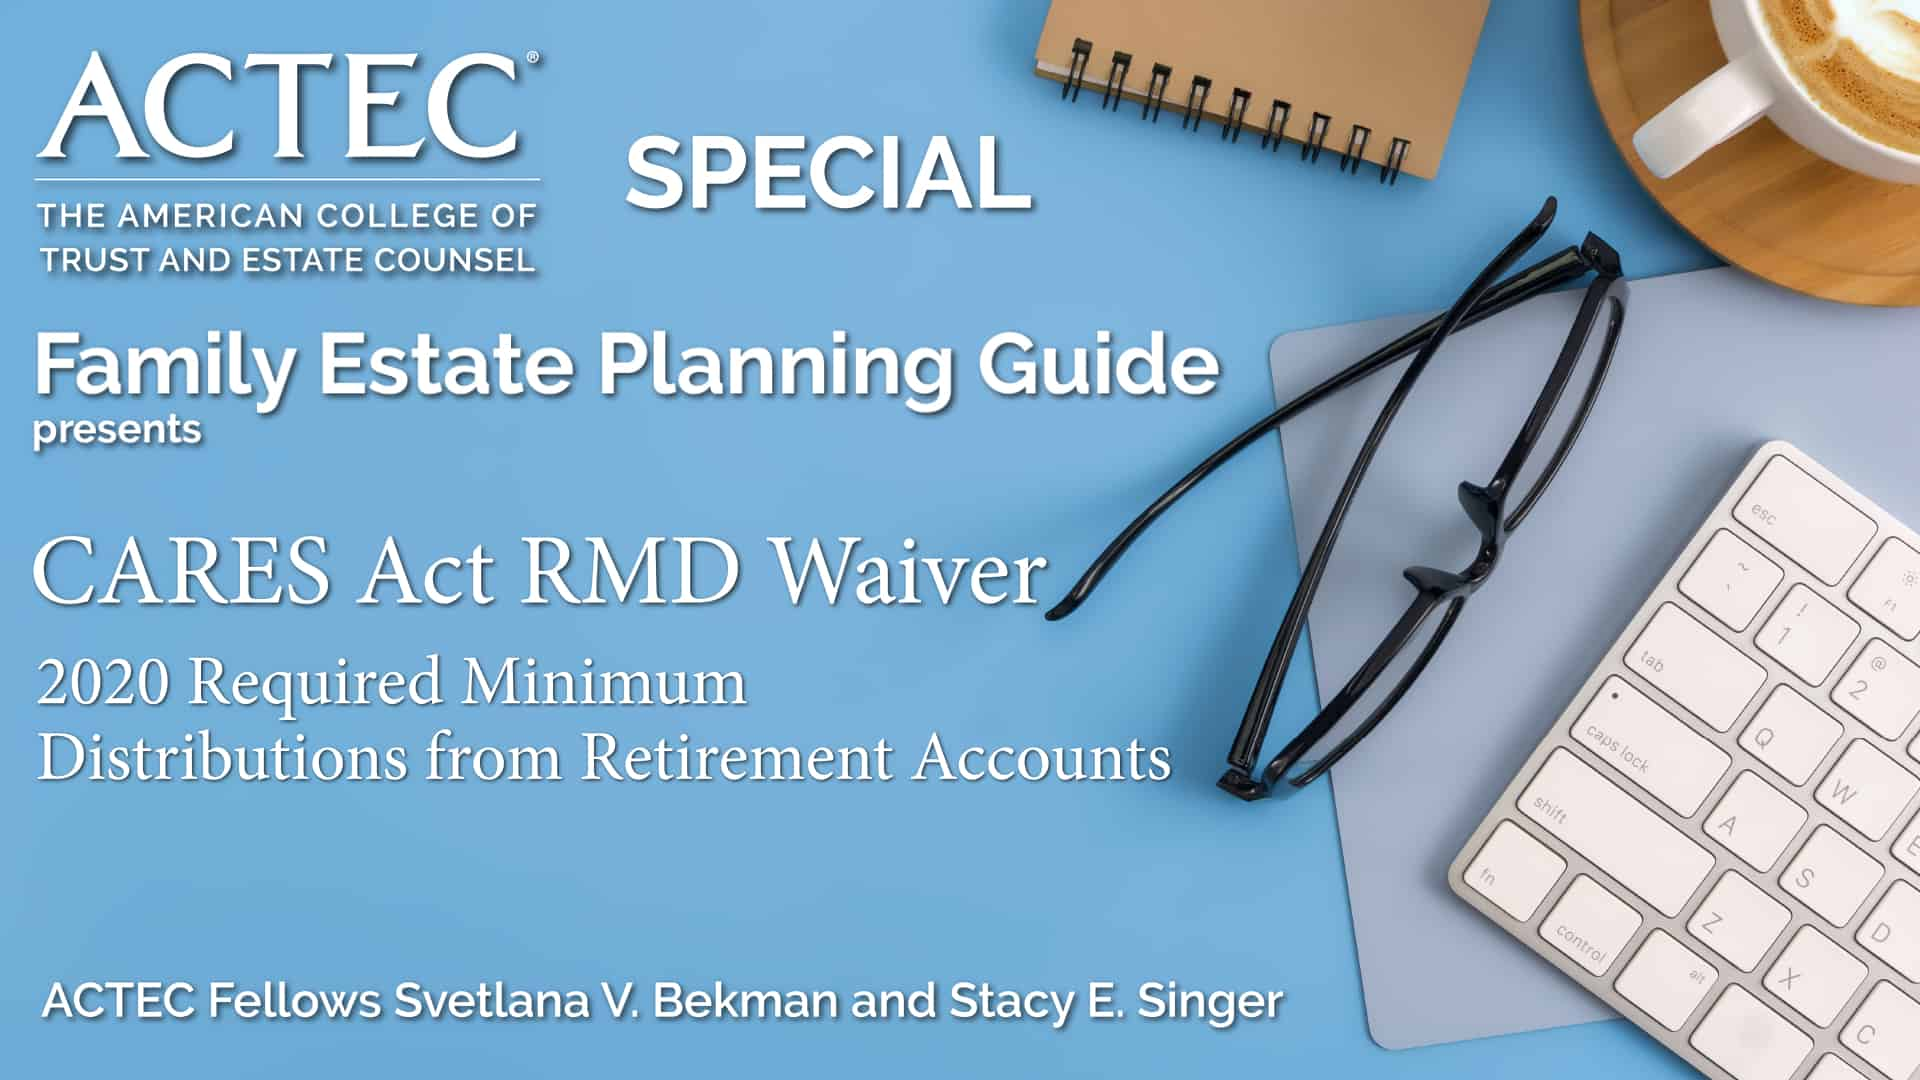 CARES Act RMD Waiver   2020 Required Minimum Distributions from Retirement Accounts